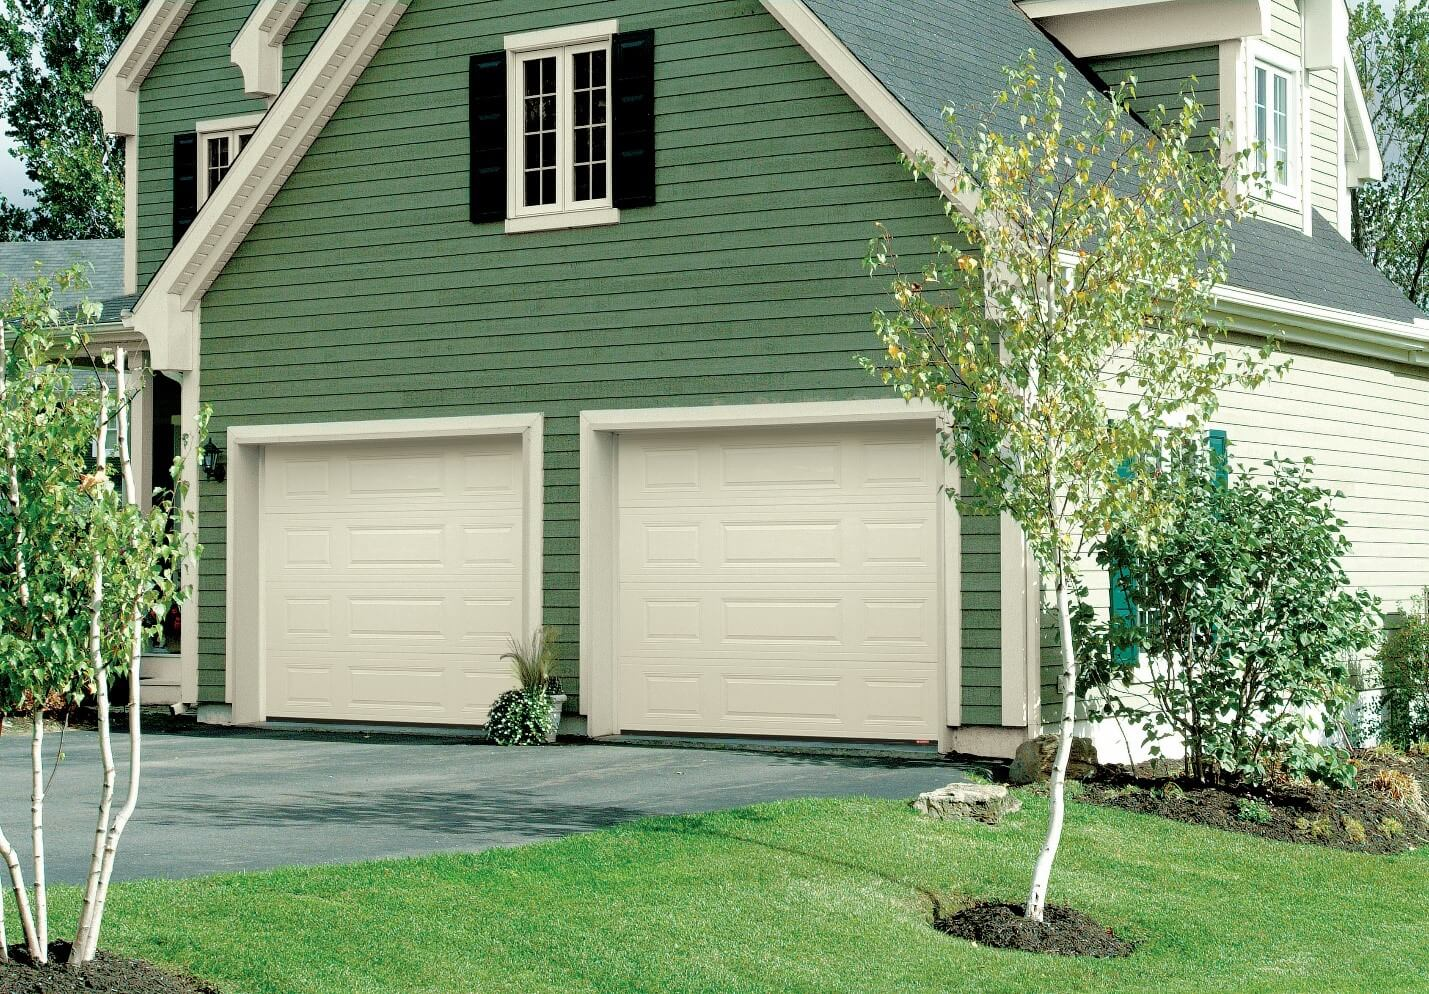 You like this look? These are Standard+ Classic MIX Design, 9' x 7', in Desert Sand Color garage doors